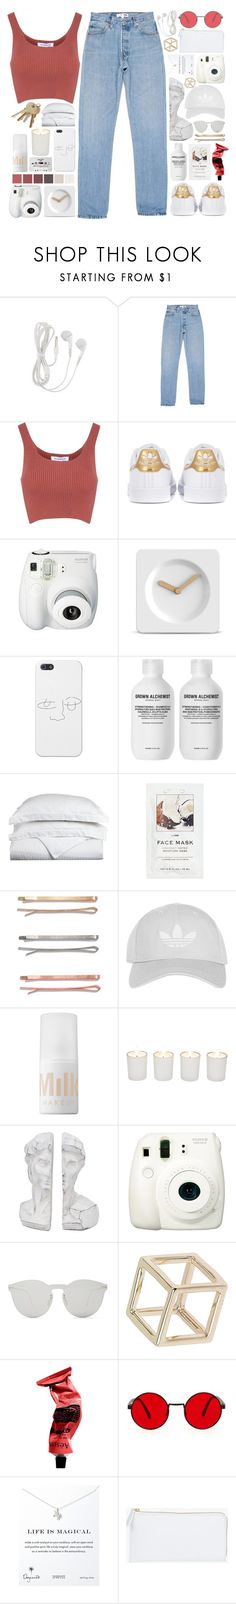 """free as i'll ever be // #207"" by jar-of-hearts-xx ❤ liked on Polyvore featuring Glamorous, adidas Originals, Fujifilm, LEFF Amsterdam, Grown Alchemist, Luxor Treasures, H&M, Madewell, adidas and MILK MAKEUP"